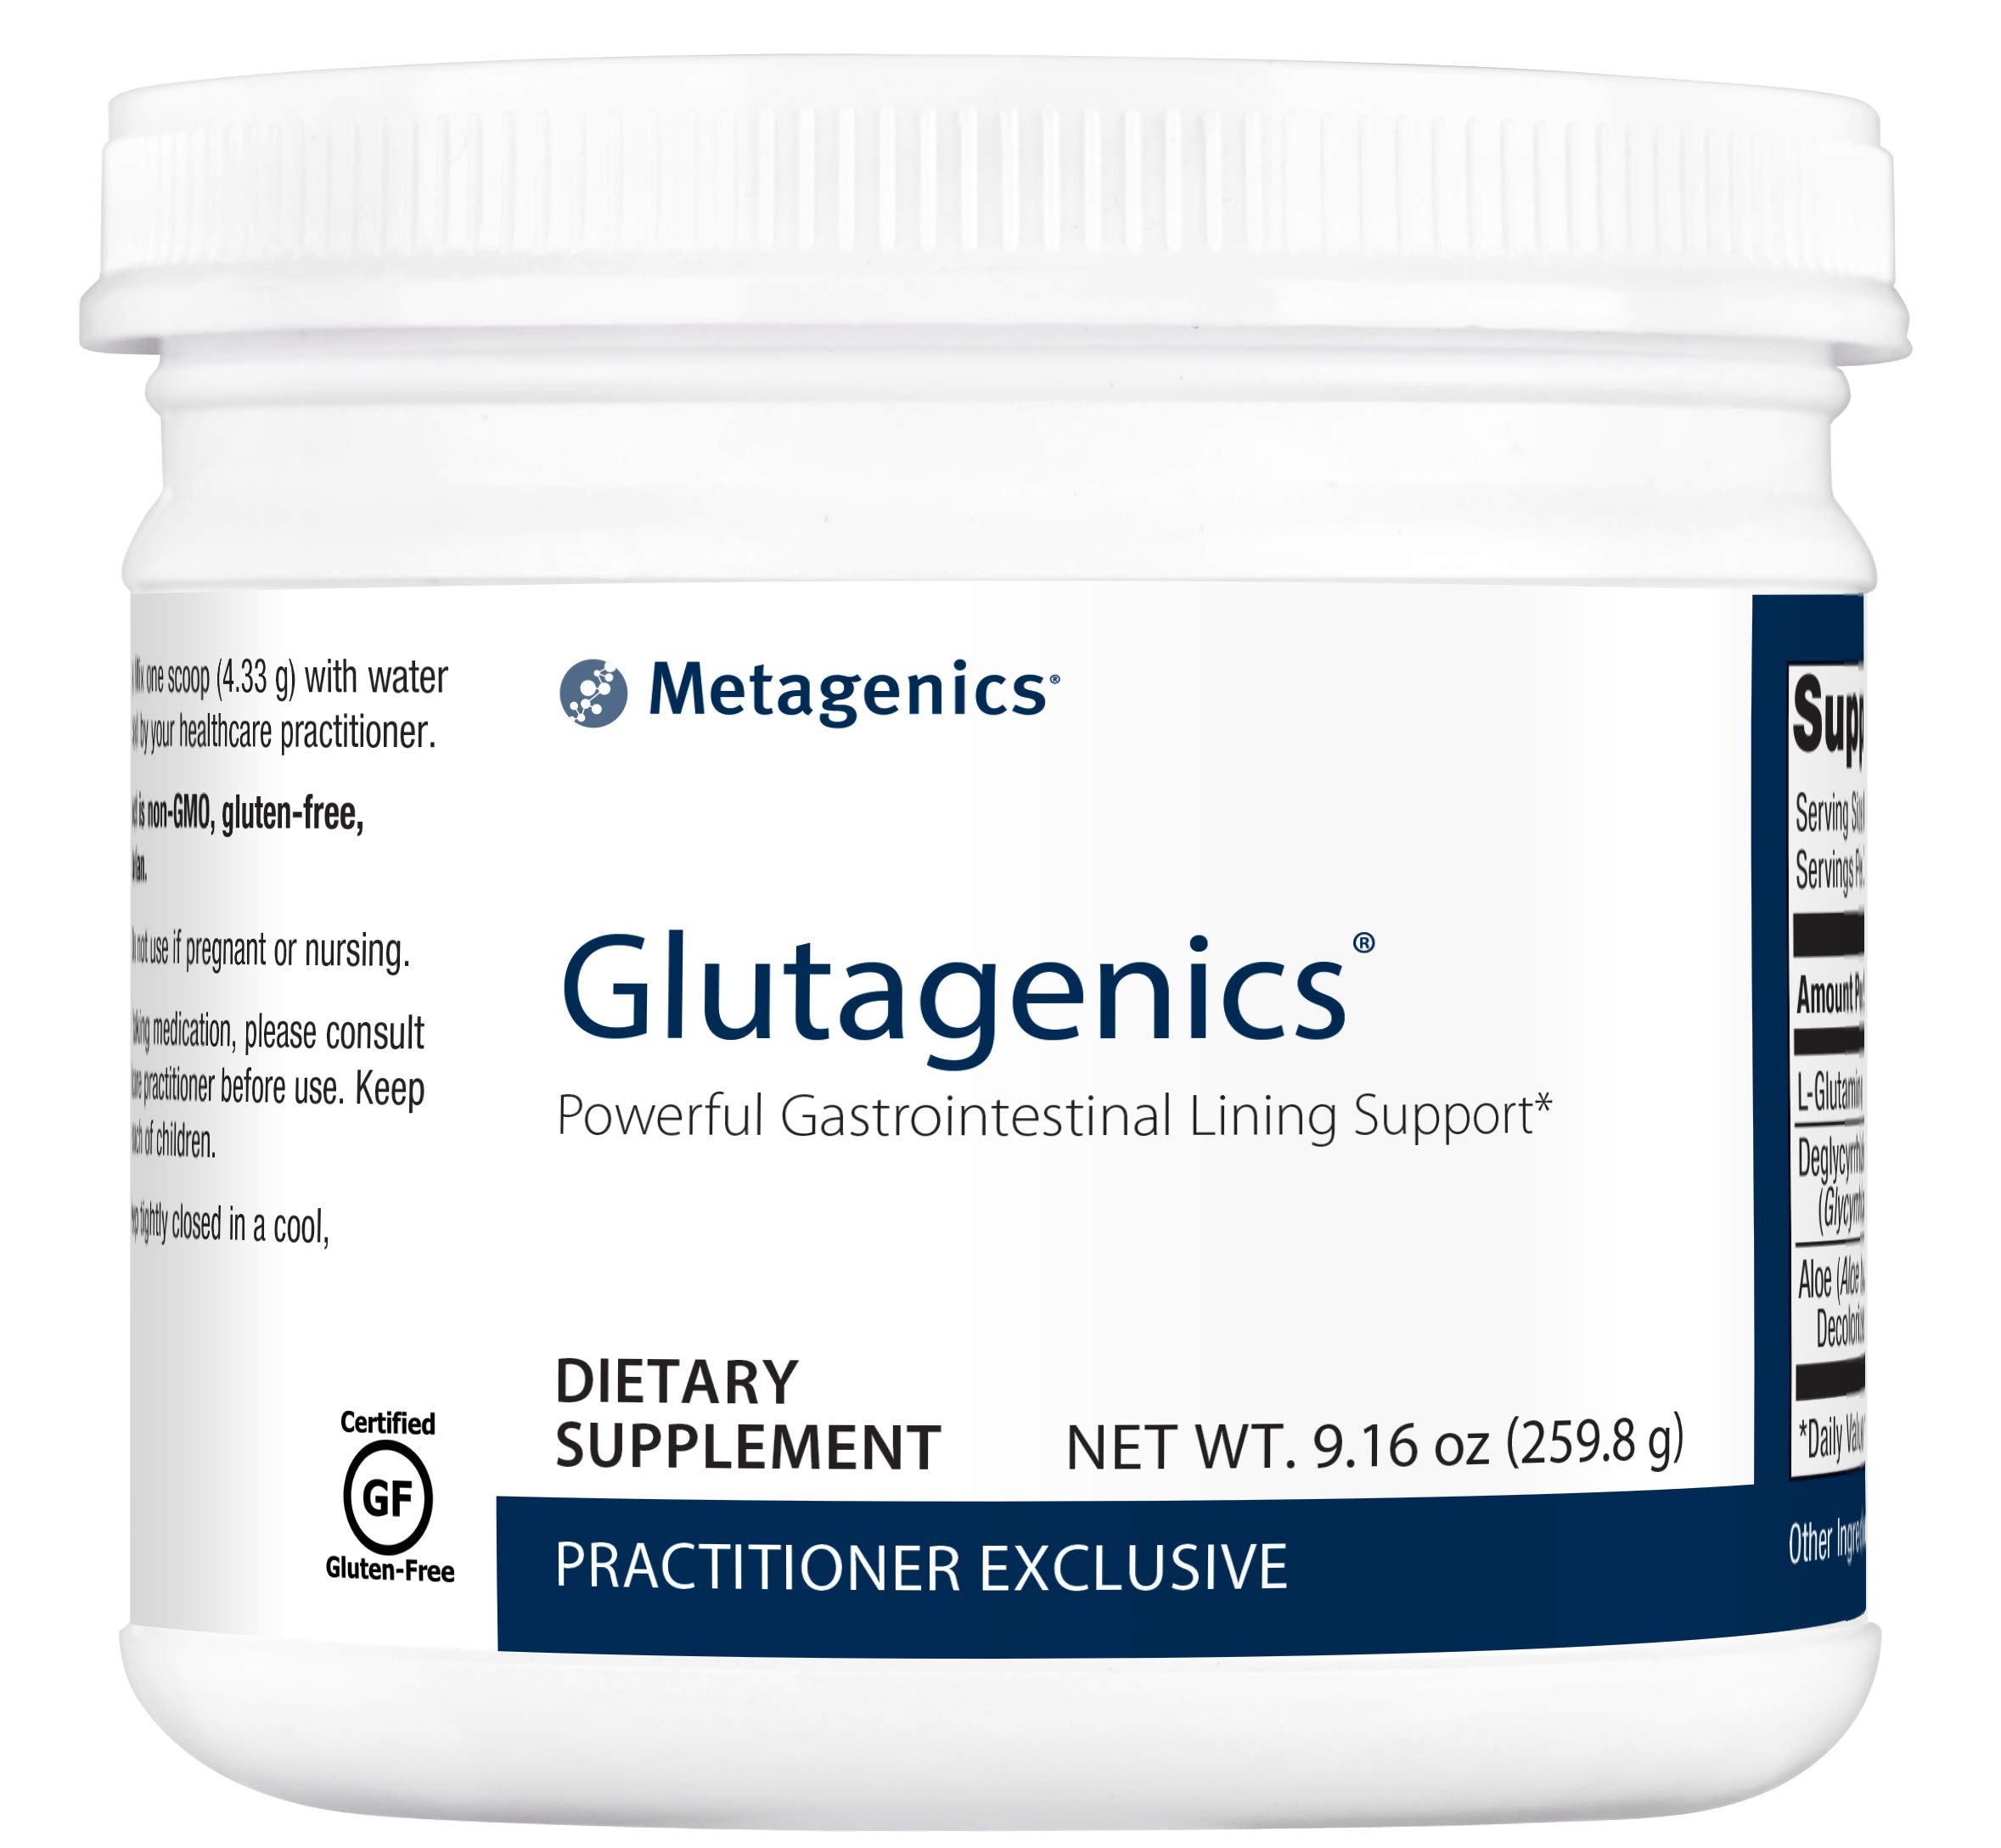 Metagenics Glutagenics® – Powerful Gastrointestinal Lining Support* | 60 servings